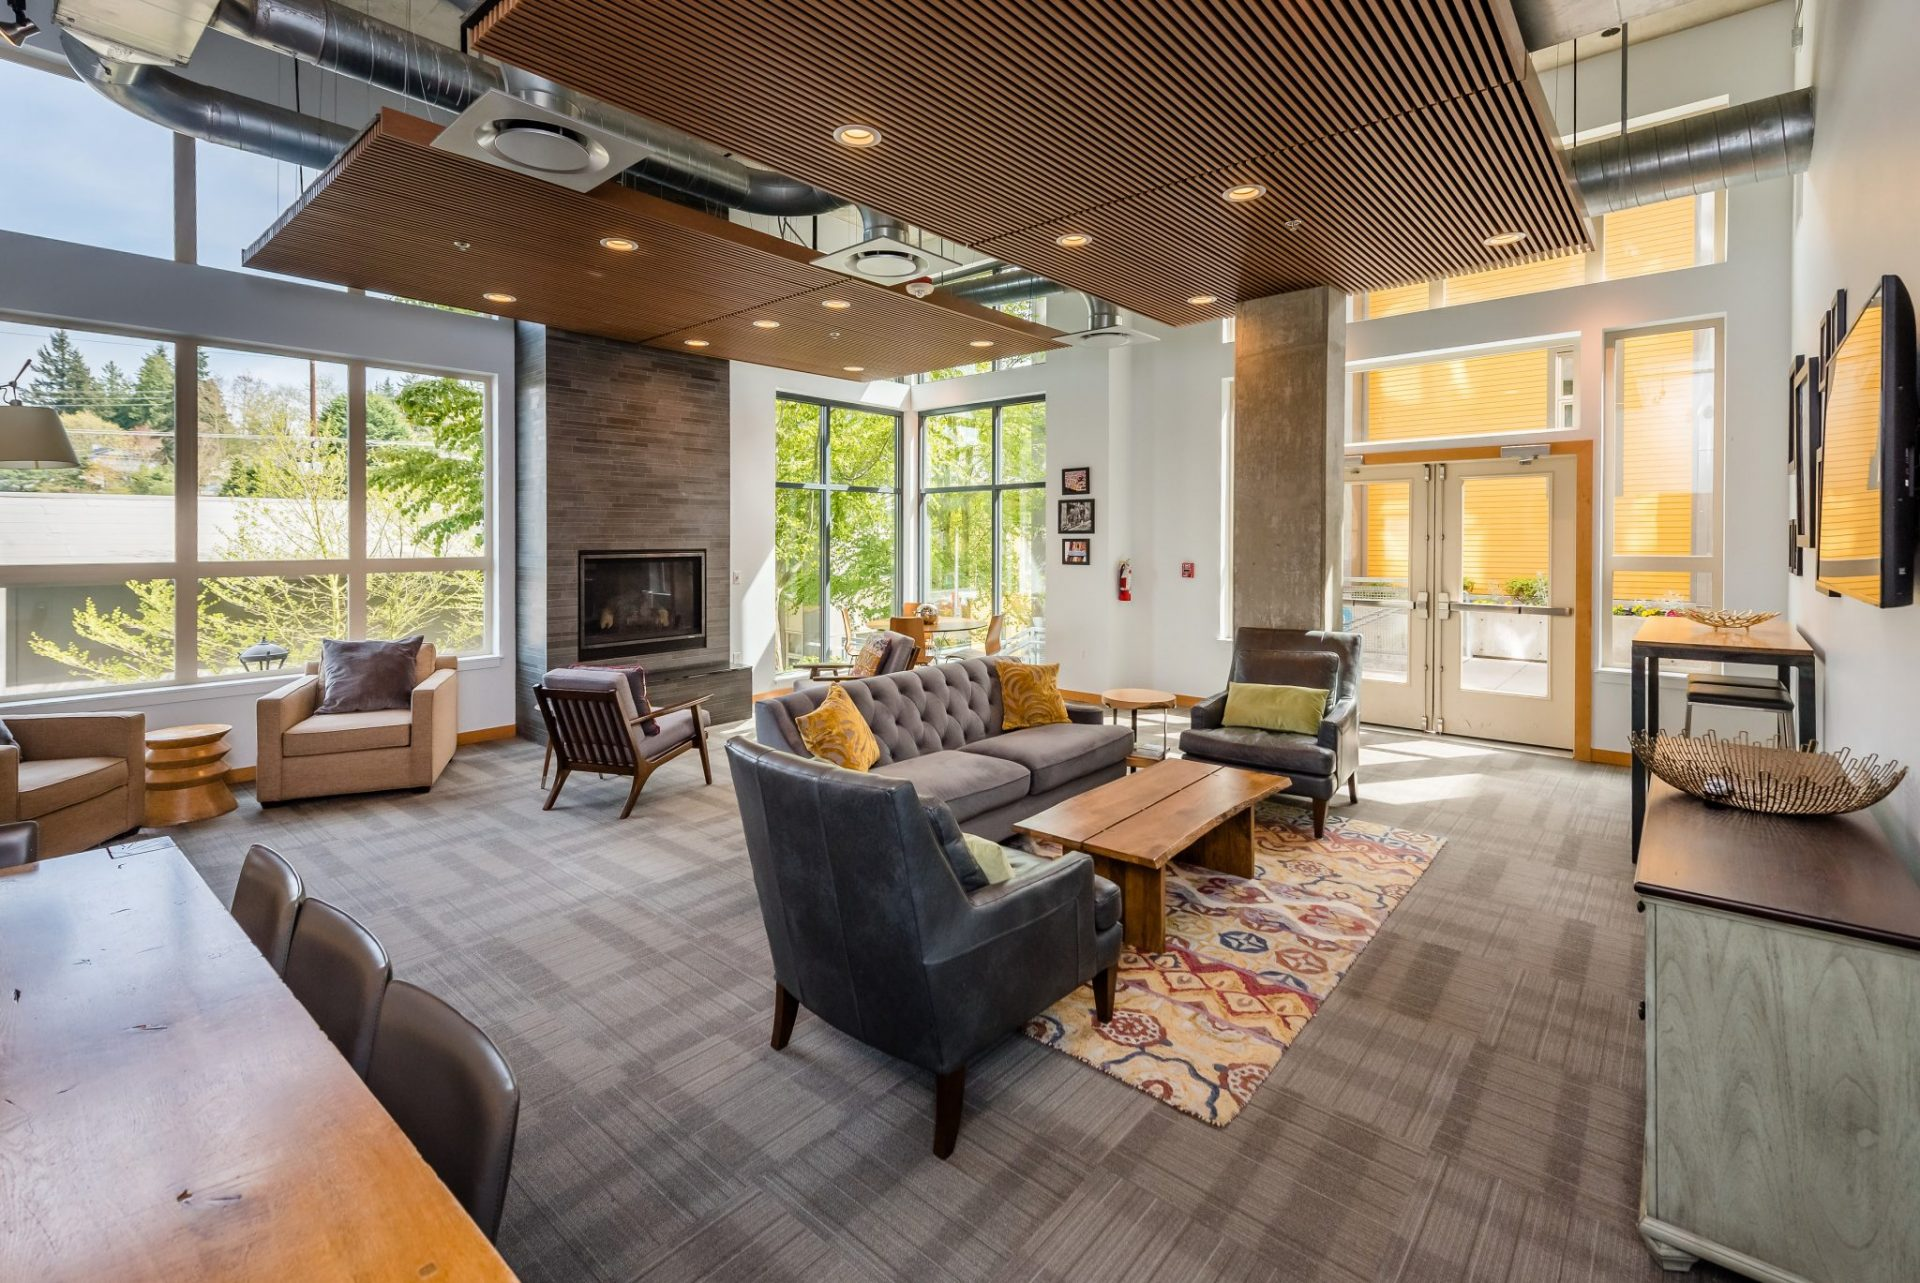 Indoor Seating At Thornton Place Apartments In Seattle, WA